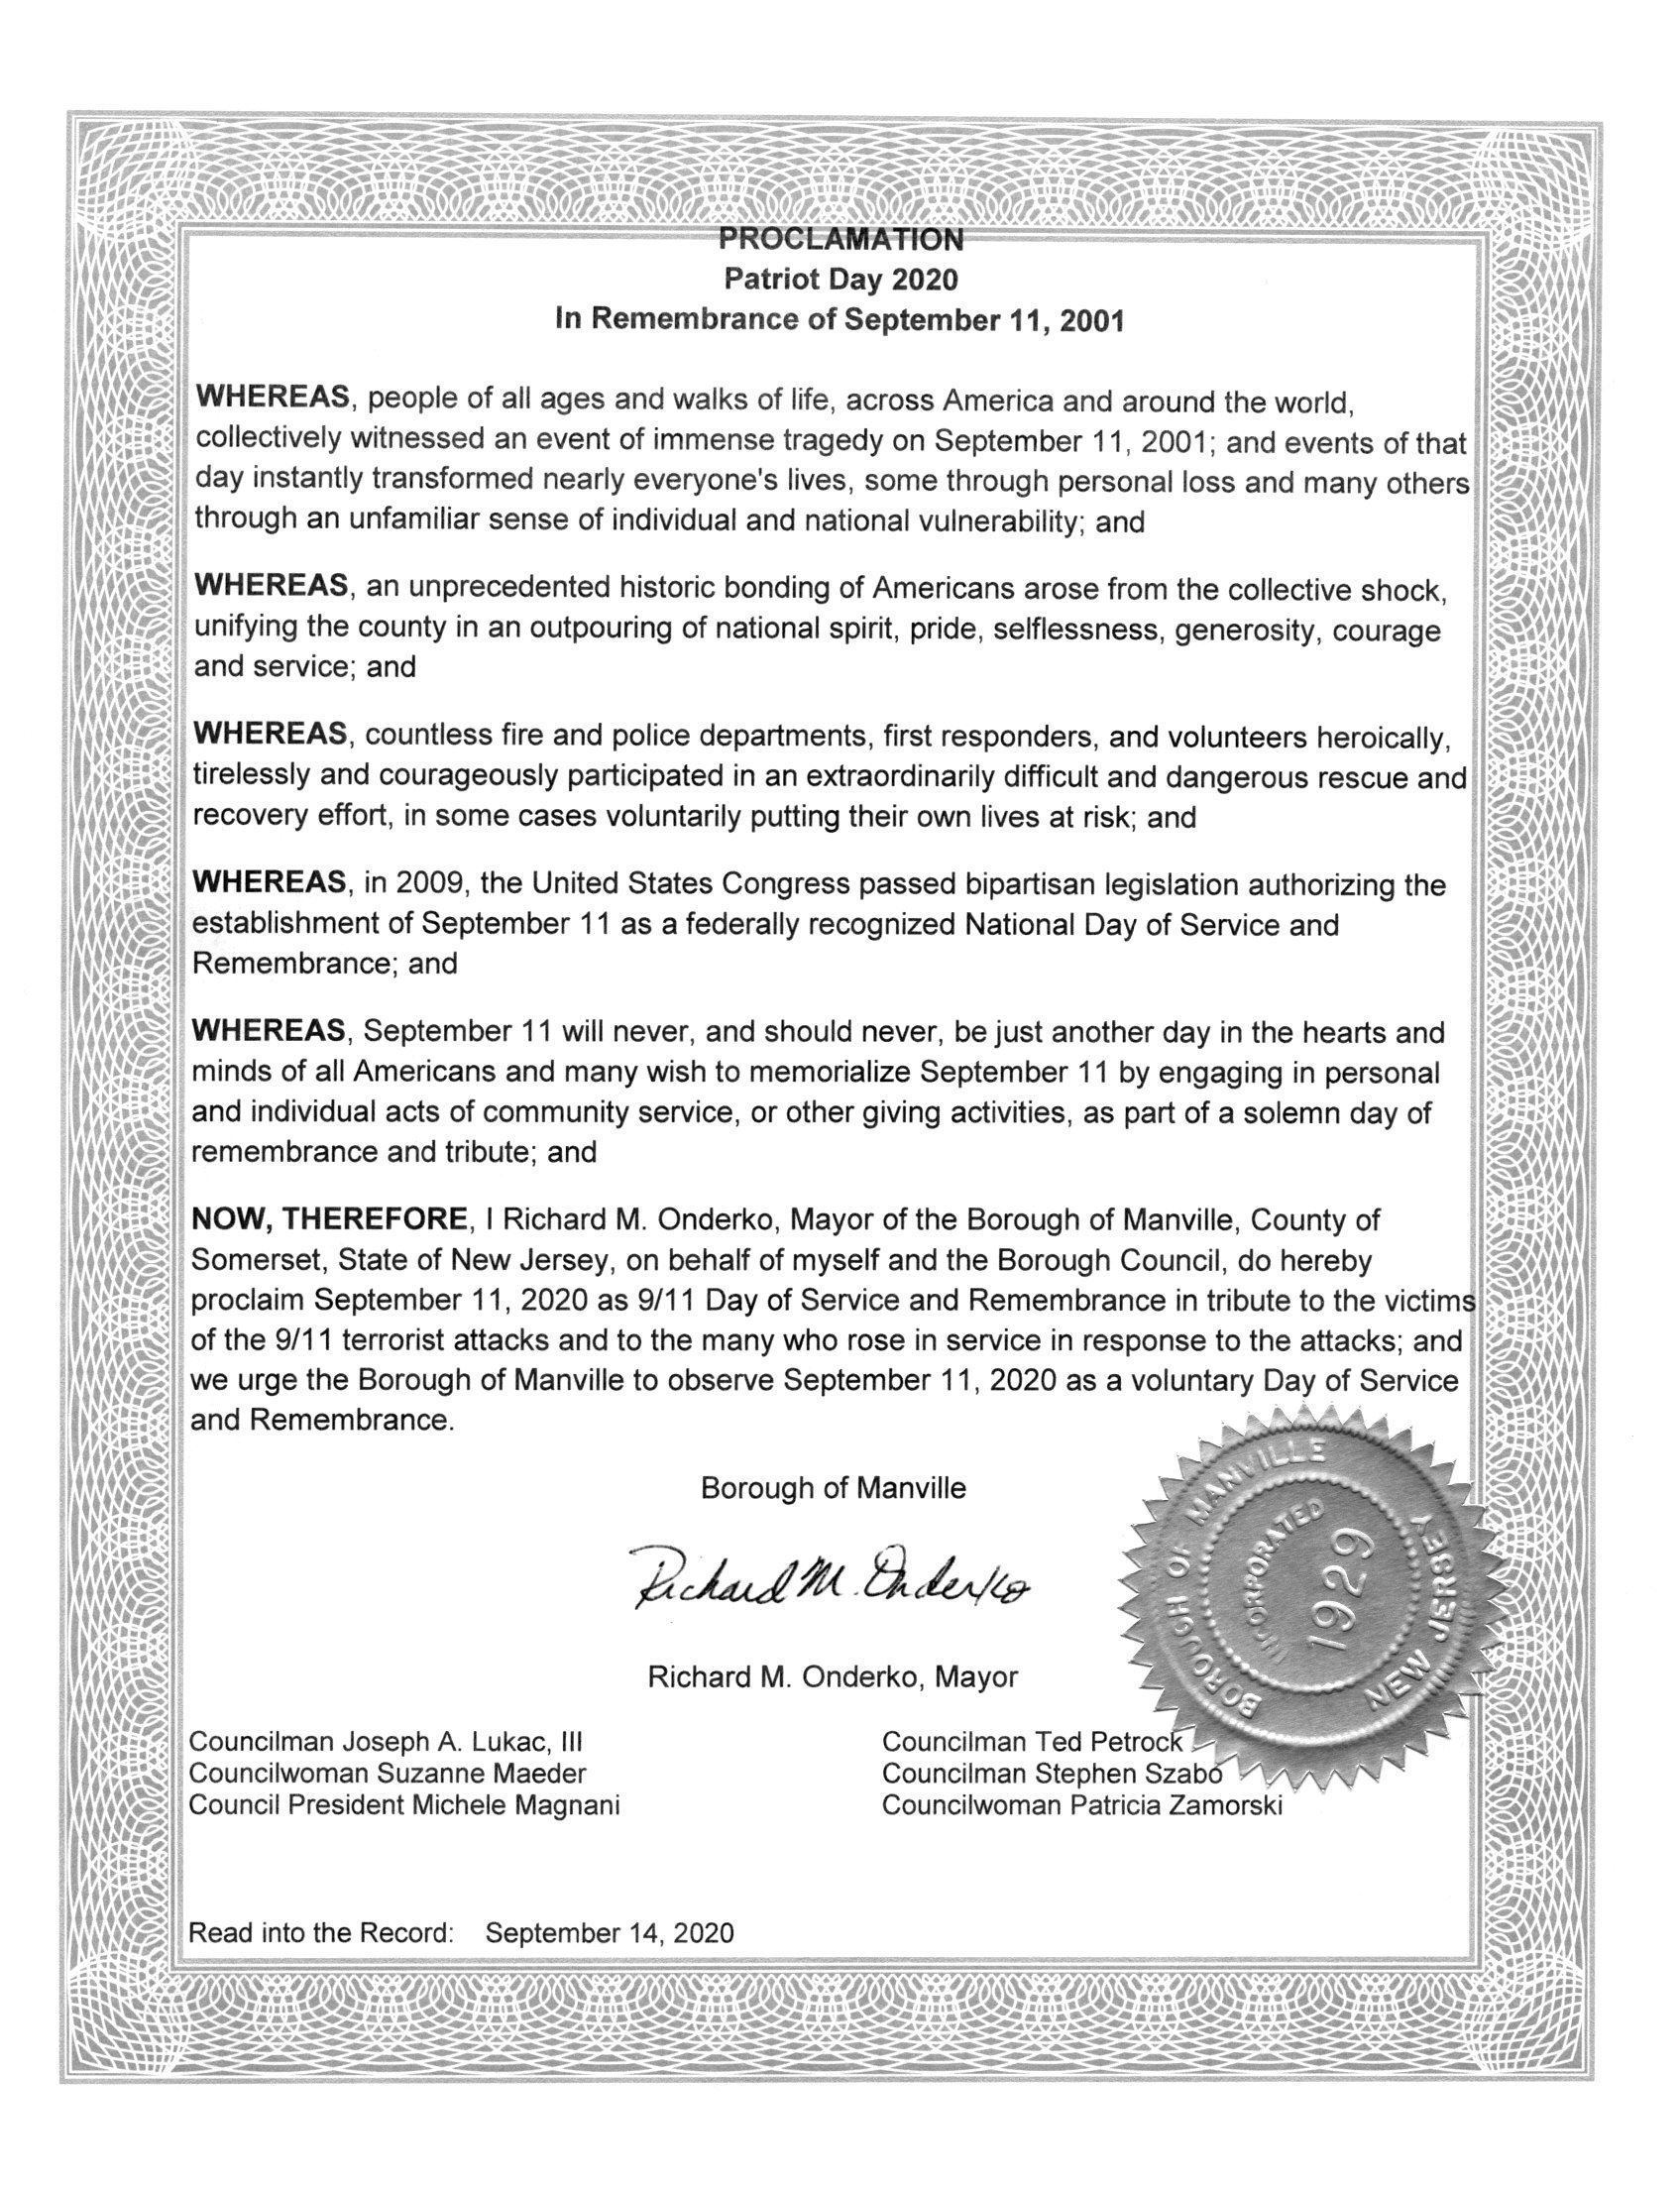 Patriot Day 2020 Proclamation